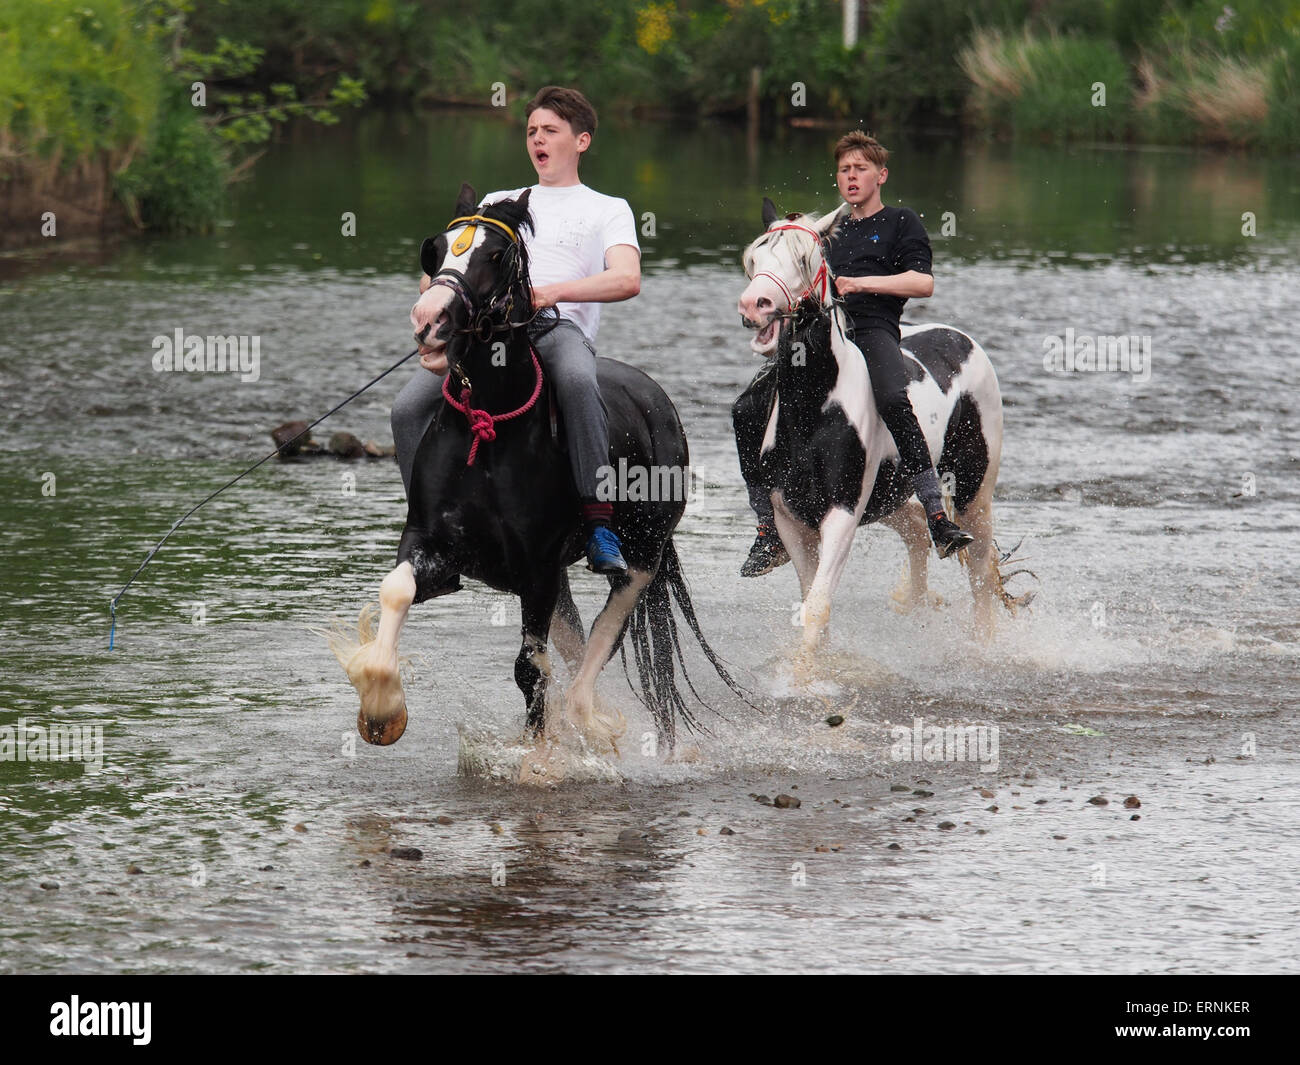 Appleby-in-Westmorland, Cumbria, England - June 05, 2015: Horses being washed in the river Eden prior to trading - Stock Image